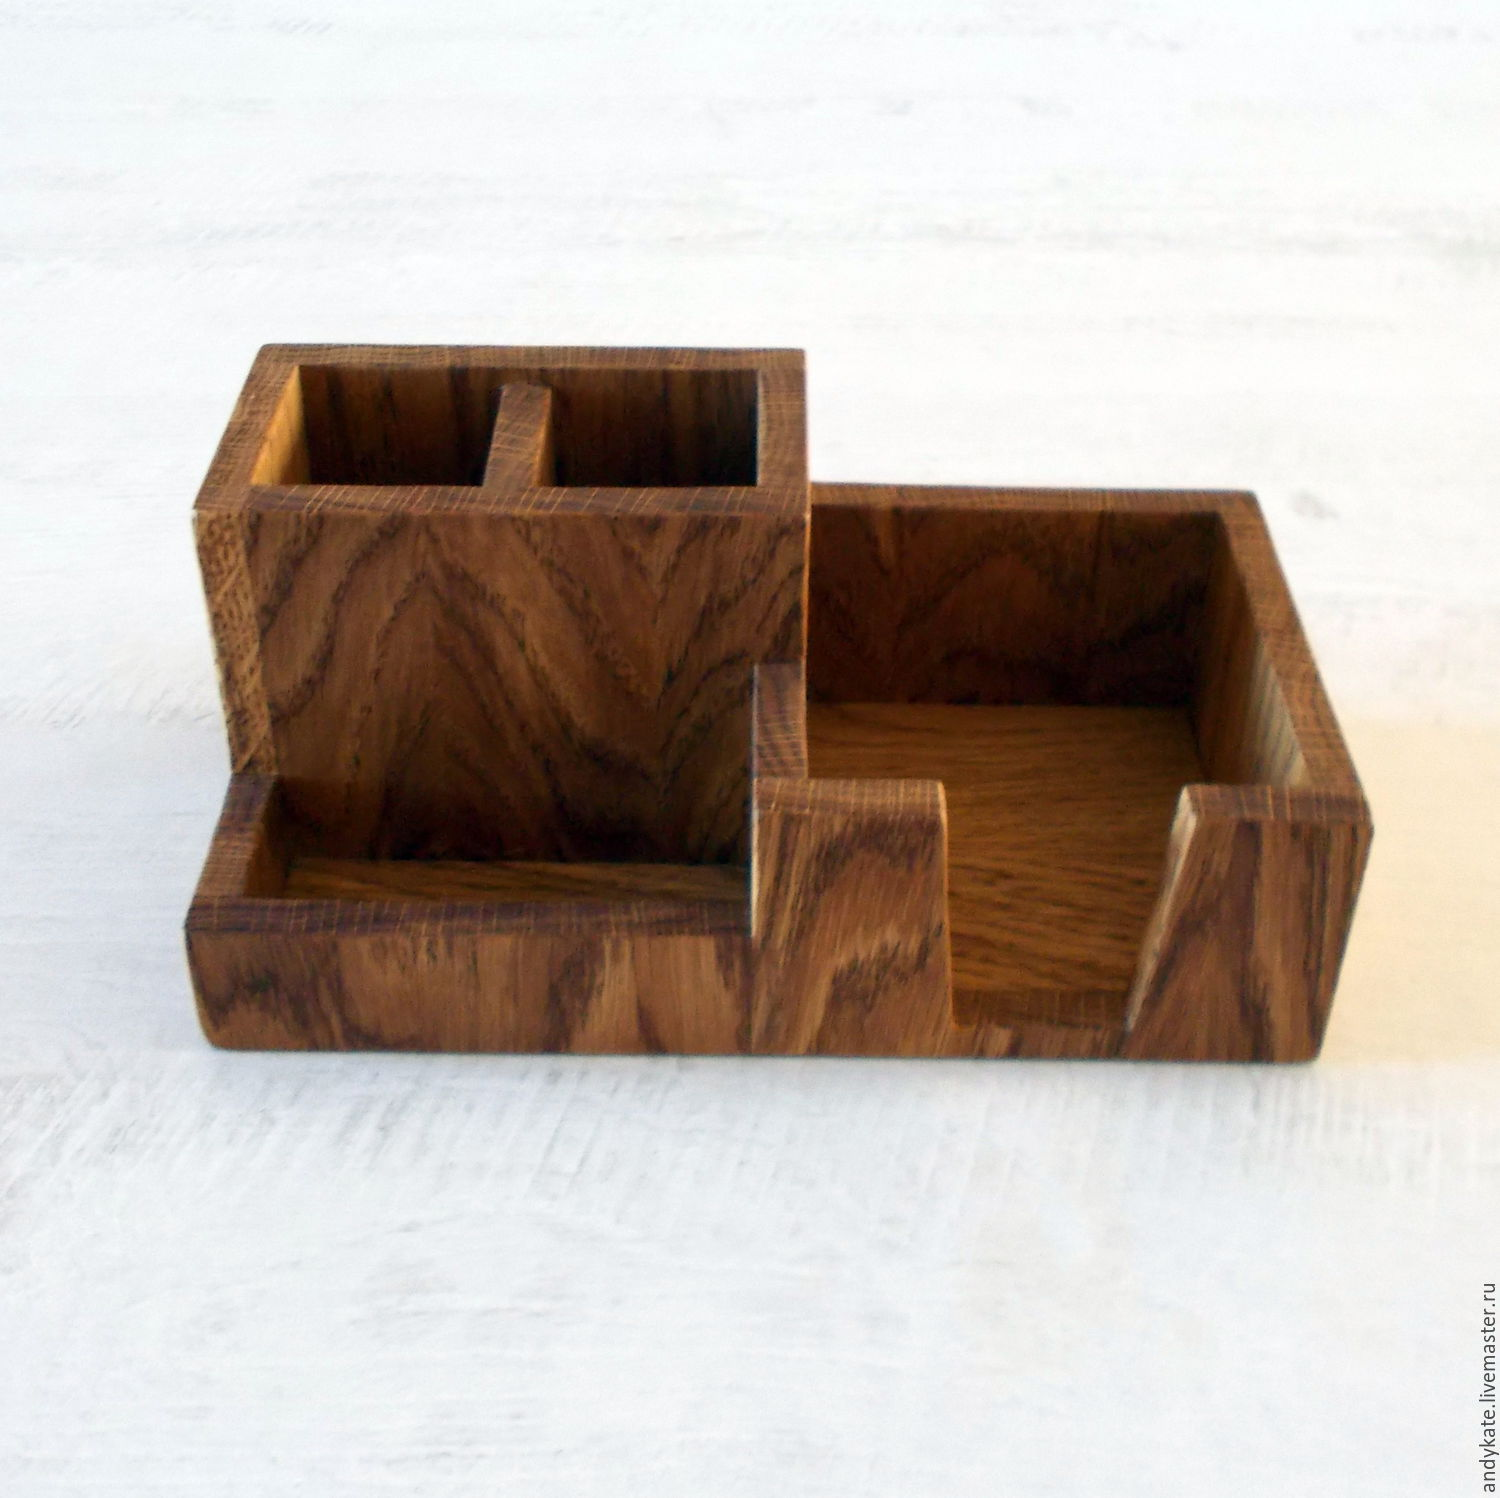 wooden desktop organizer made from oak